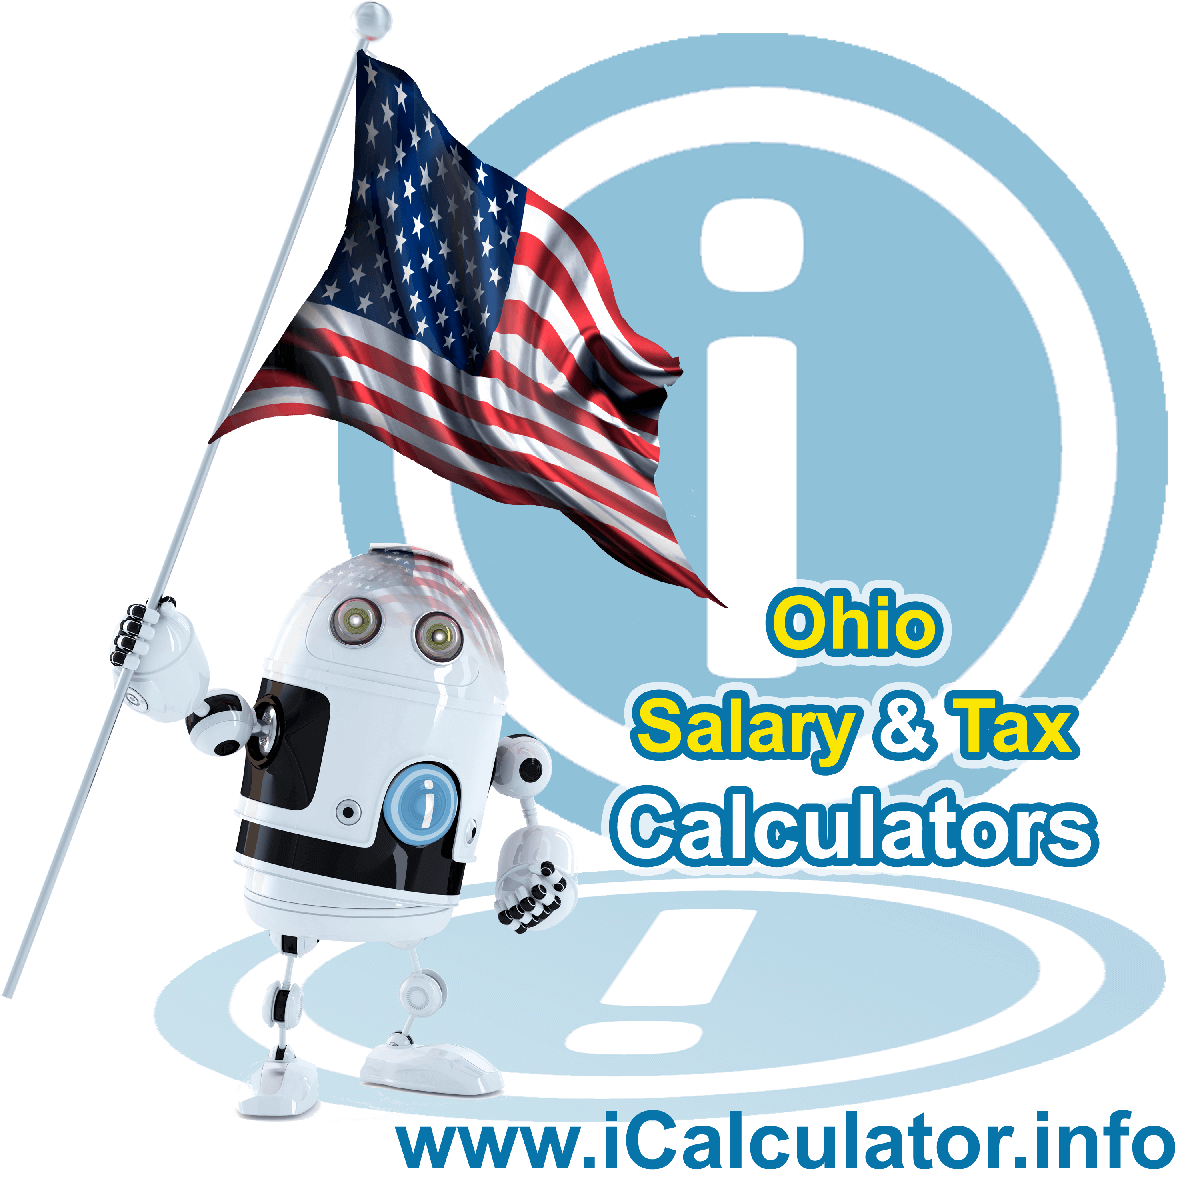 Ohio Salary Calculator 2020 | iCalculator | The Ohio Salary Calculator allows you to quickly calculate your salary after tax including Ohio State Tax, Federal State Tax, Medicare Deductions, Social Security, Capital Gains and other income tax and salary deductions complete with supporting Ohio state tax tables